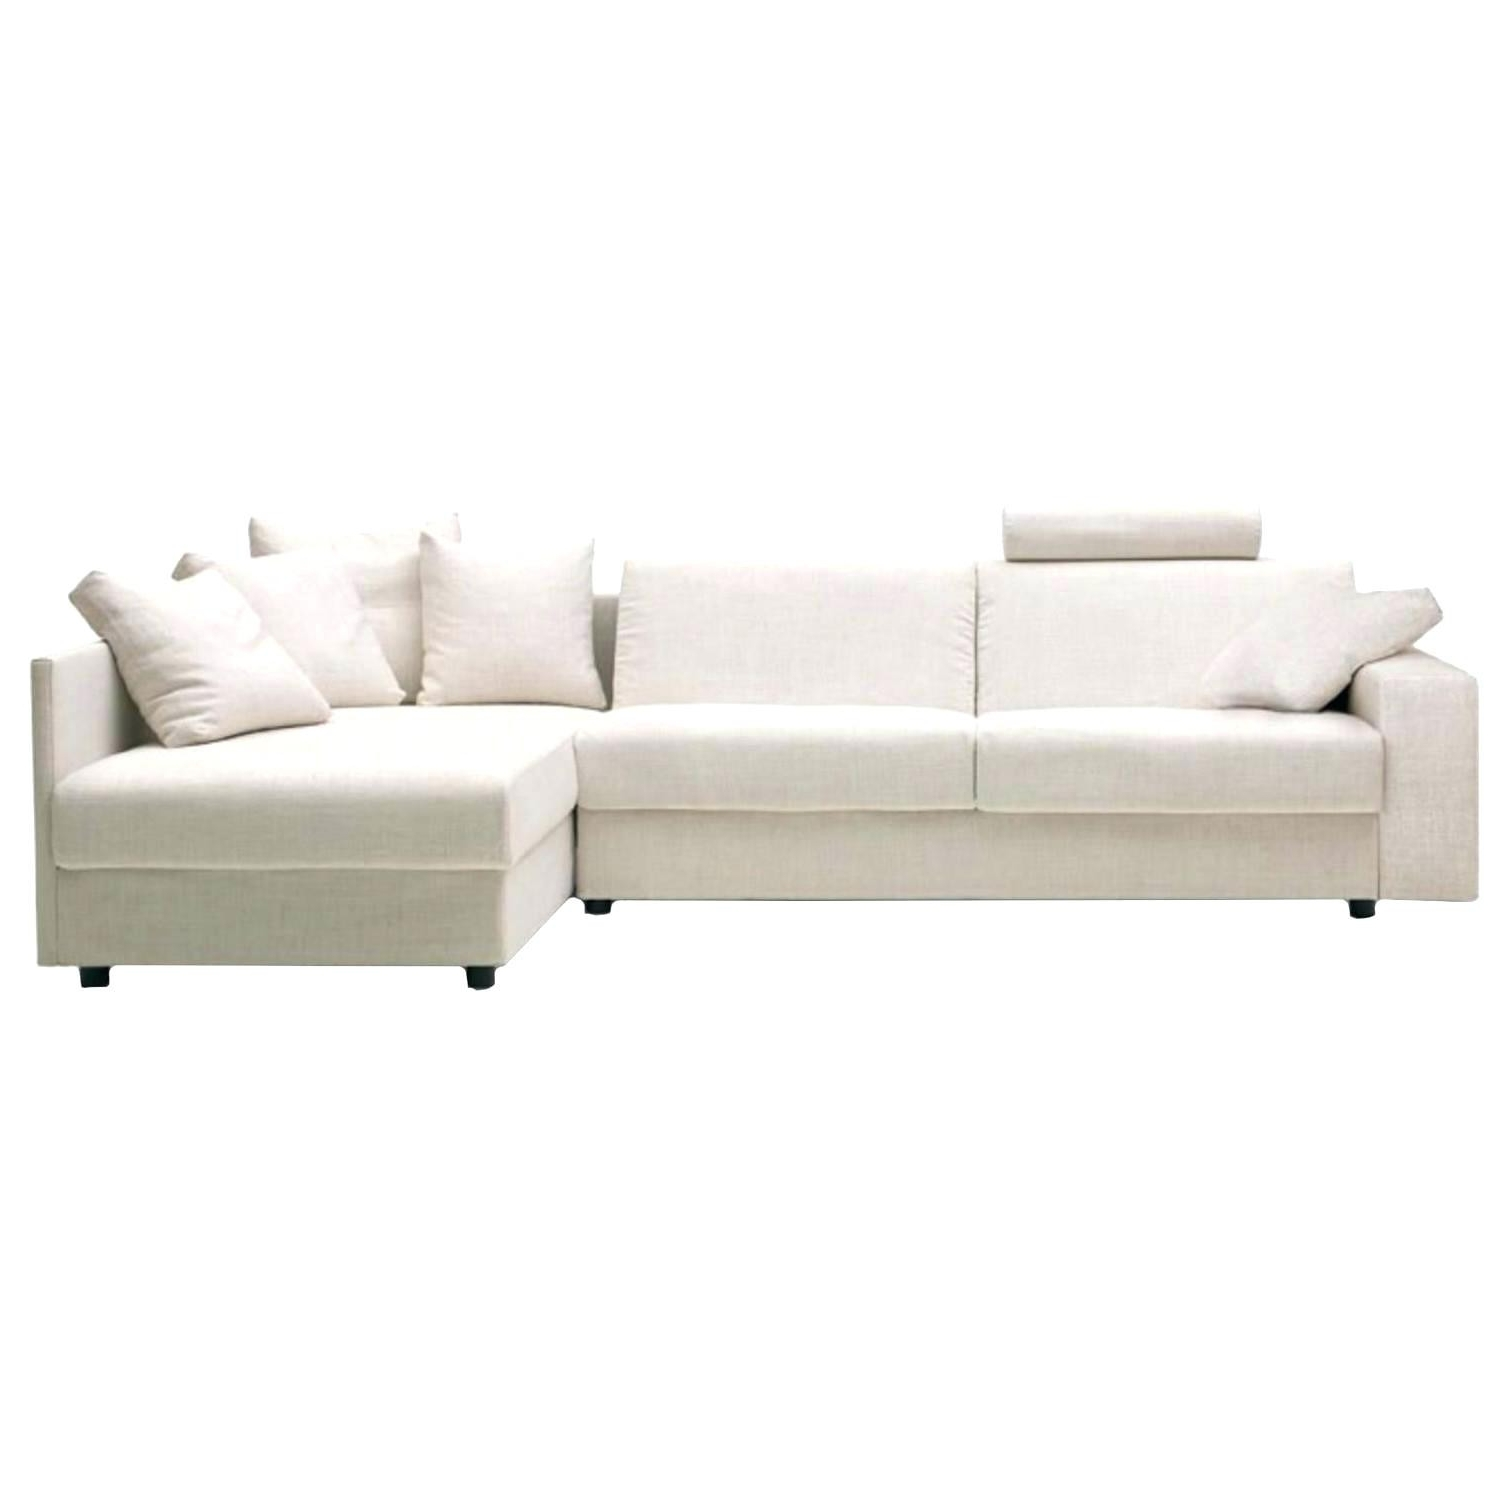 Widely Used Chaises With Storage In Furniture : Storage Sectional Sofas For Small Spaces Sectional (View 12 of 15)